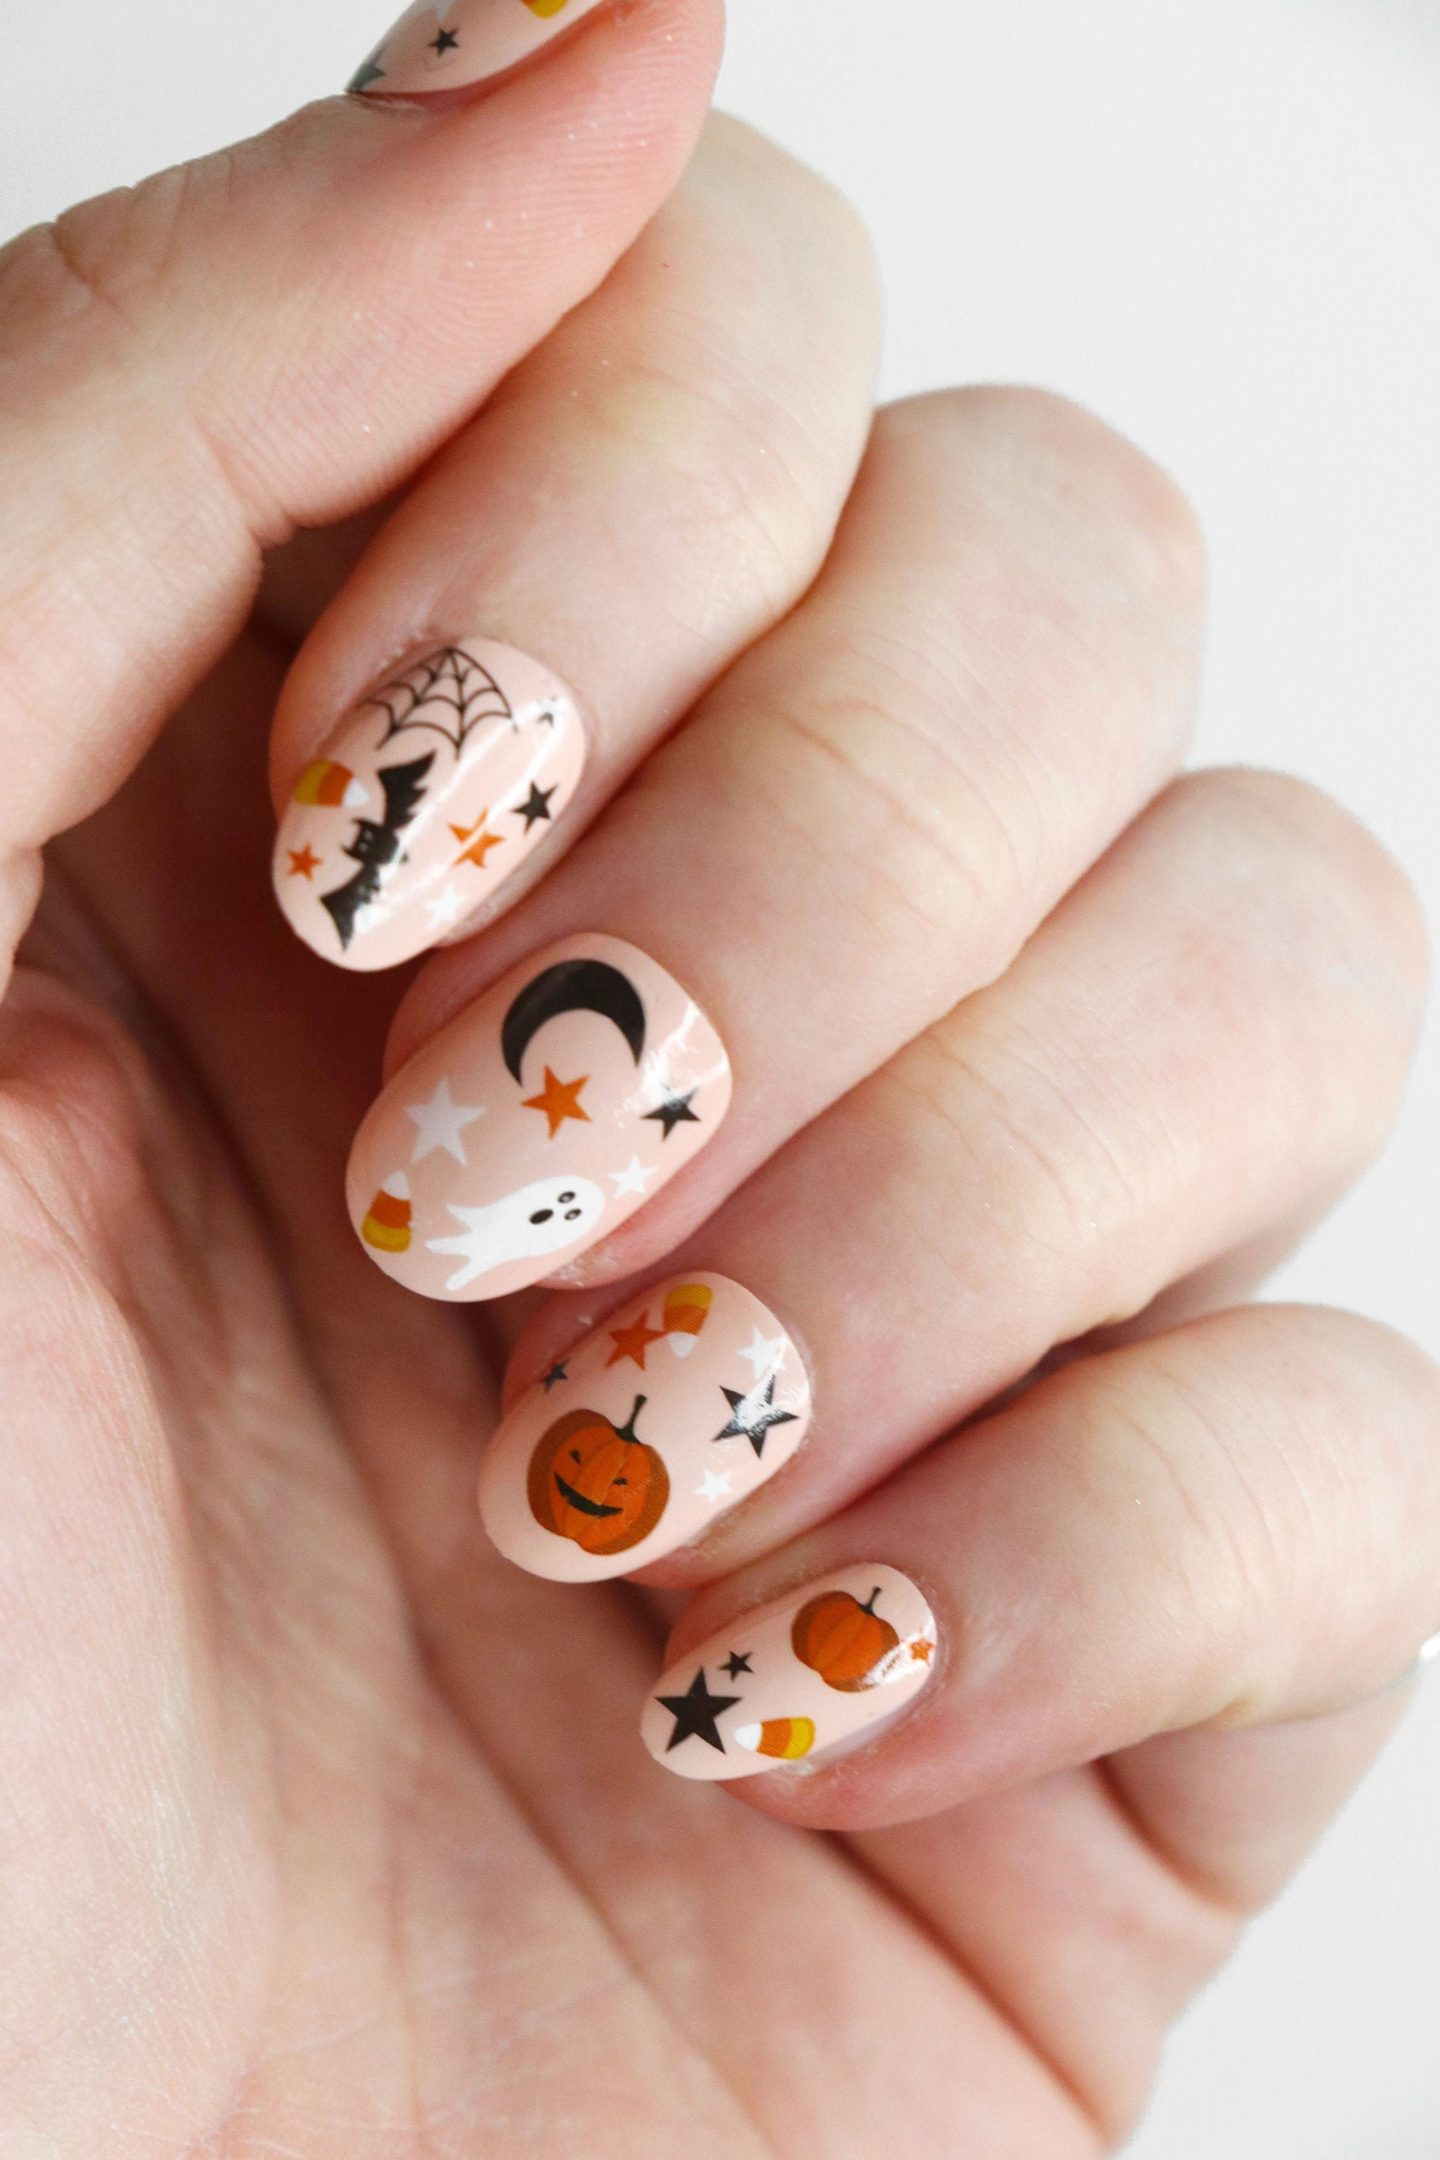 Cute short Halloween nails with ghosts and pumpkins